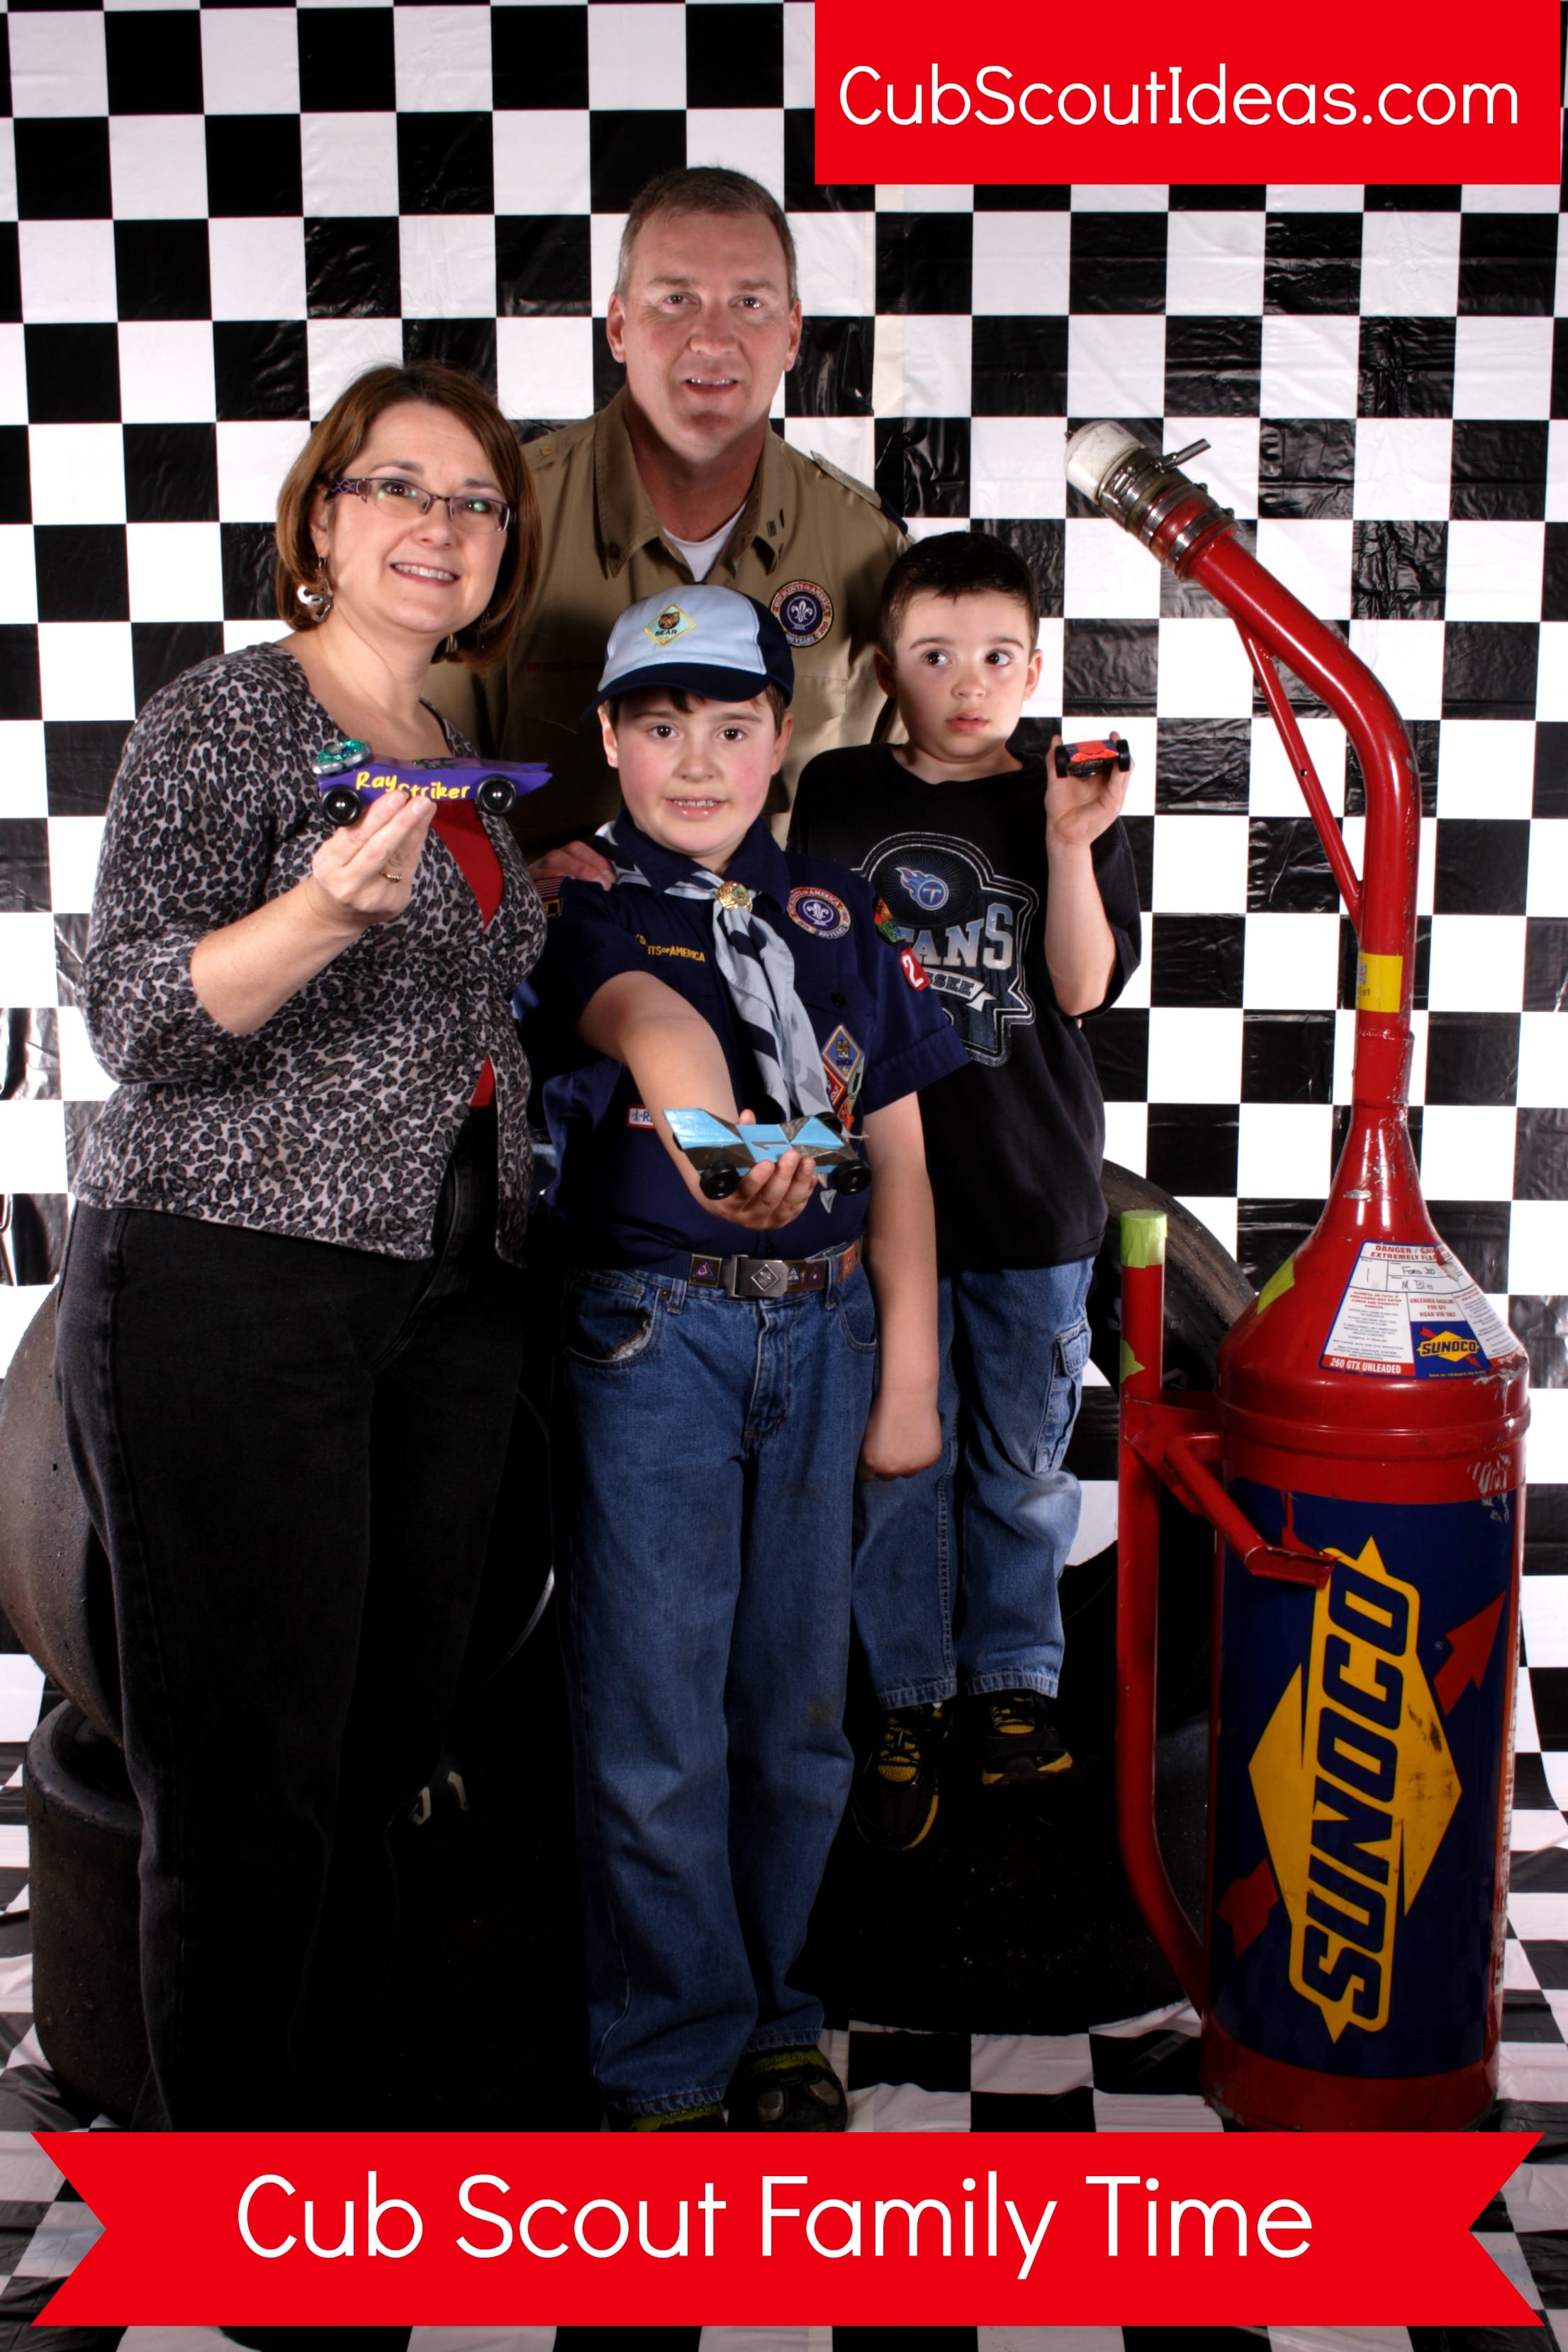 Benefits of Cub Scouts – Spending Time with Your Boys